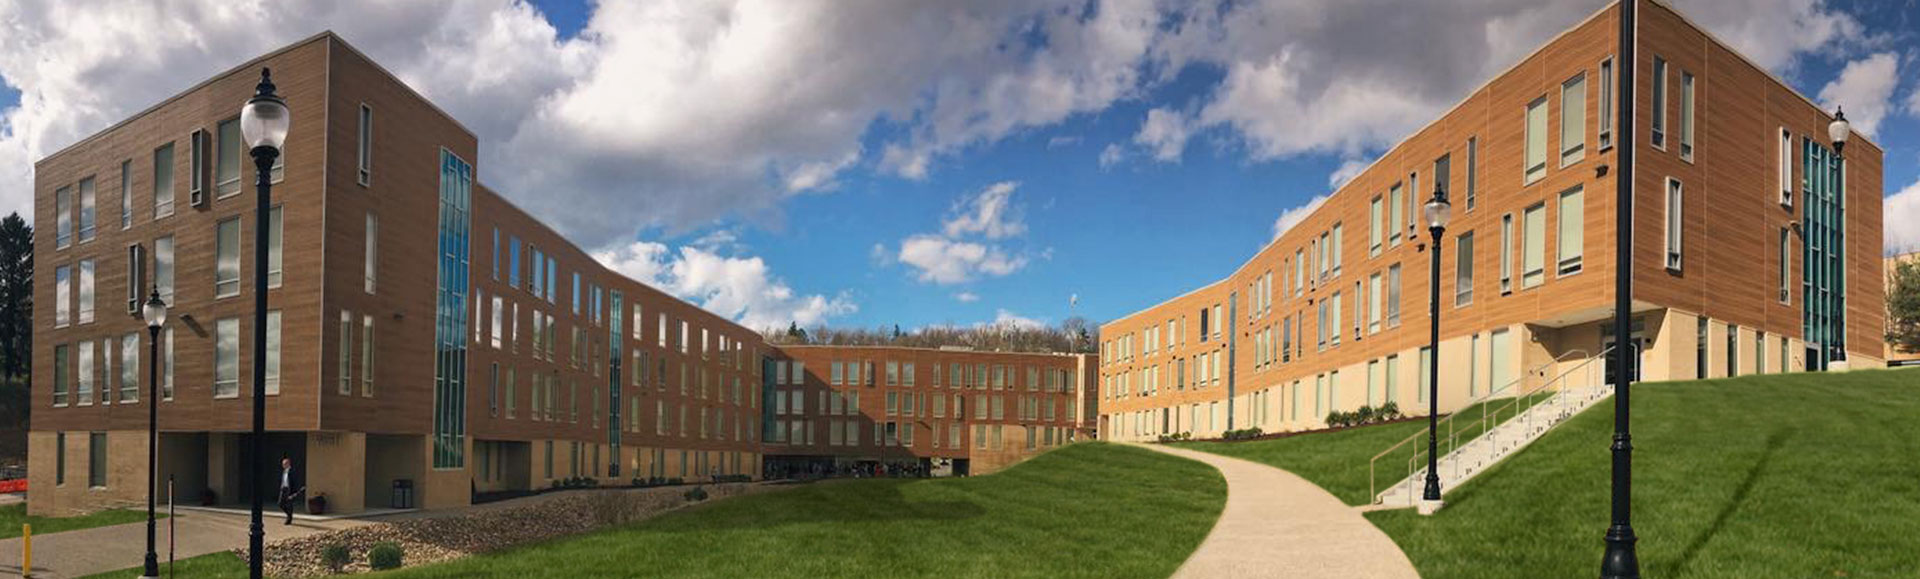 Fairmont State University – College Apartments Housing